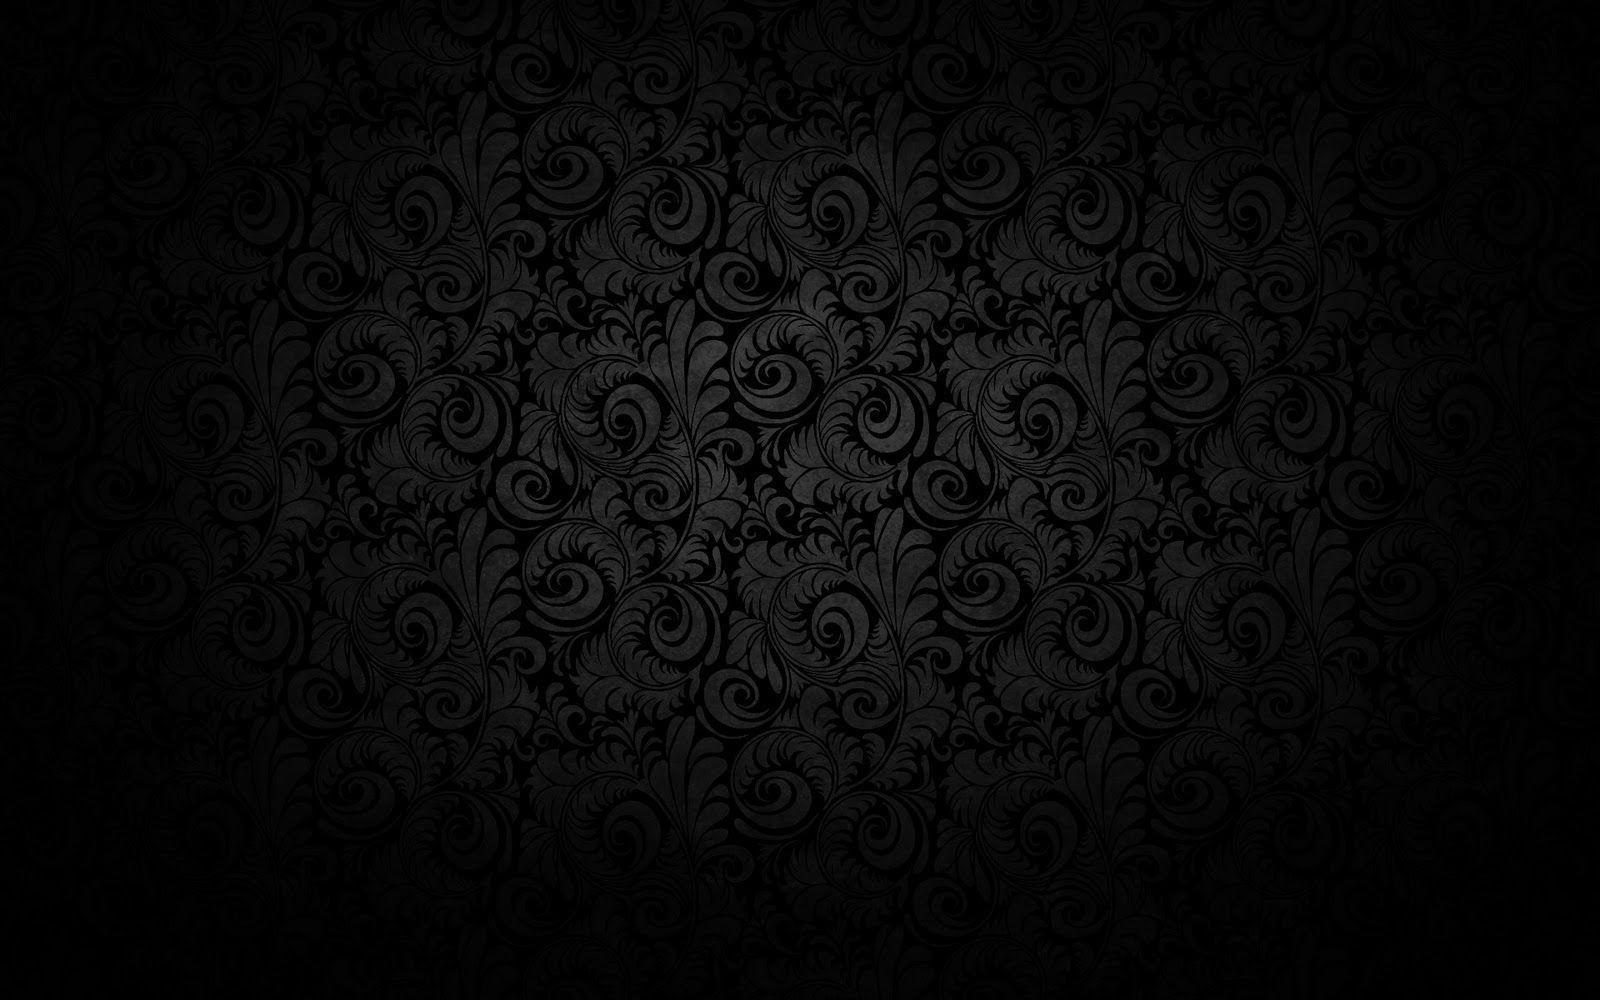 fancy backgrounds image floral pattern